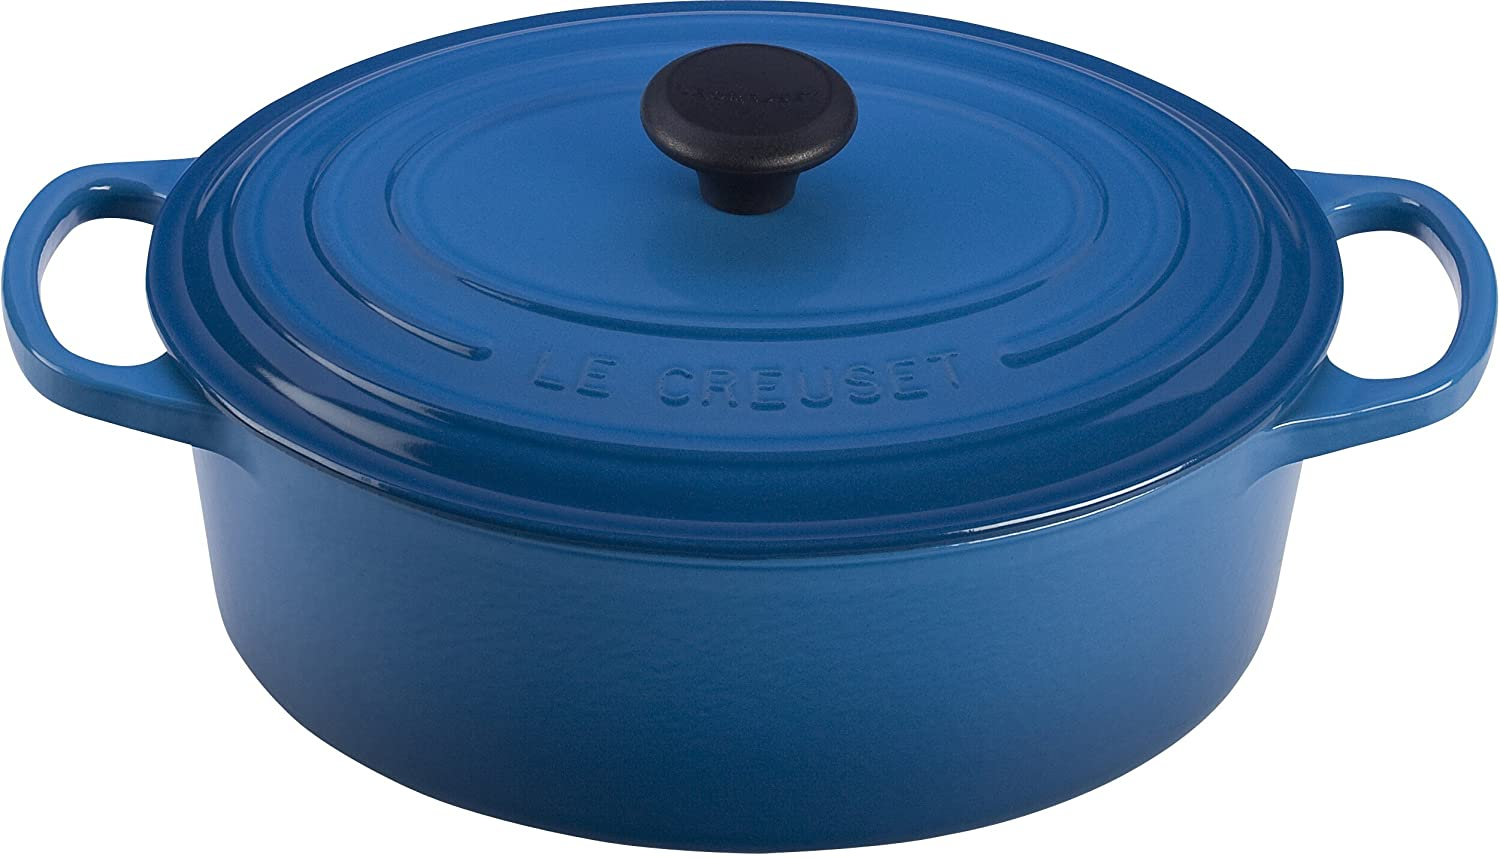 Le Creuset Signature Enameled Cast-Iron 3-1/2-Quart Oval (Dutch) French Oven, Marseille